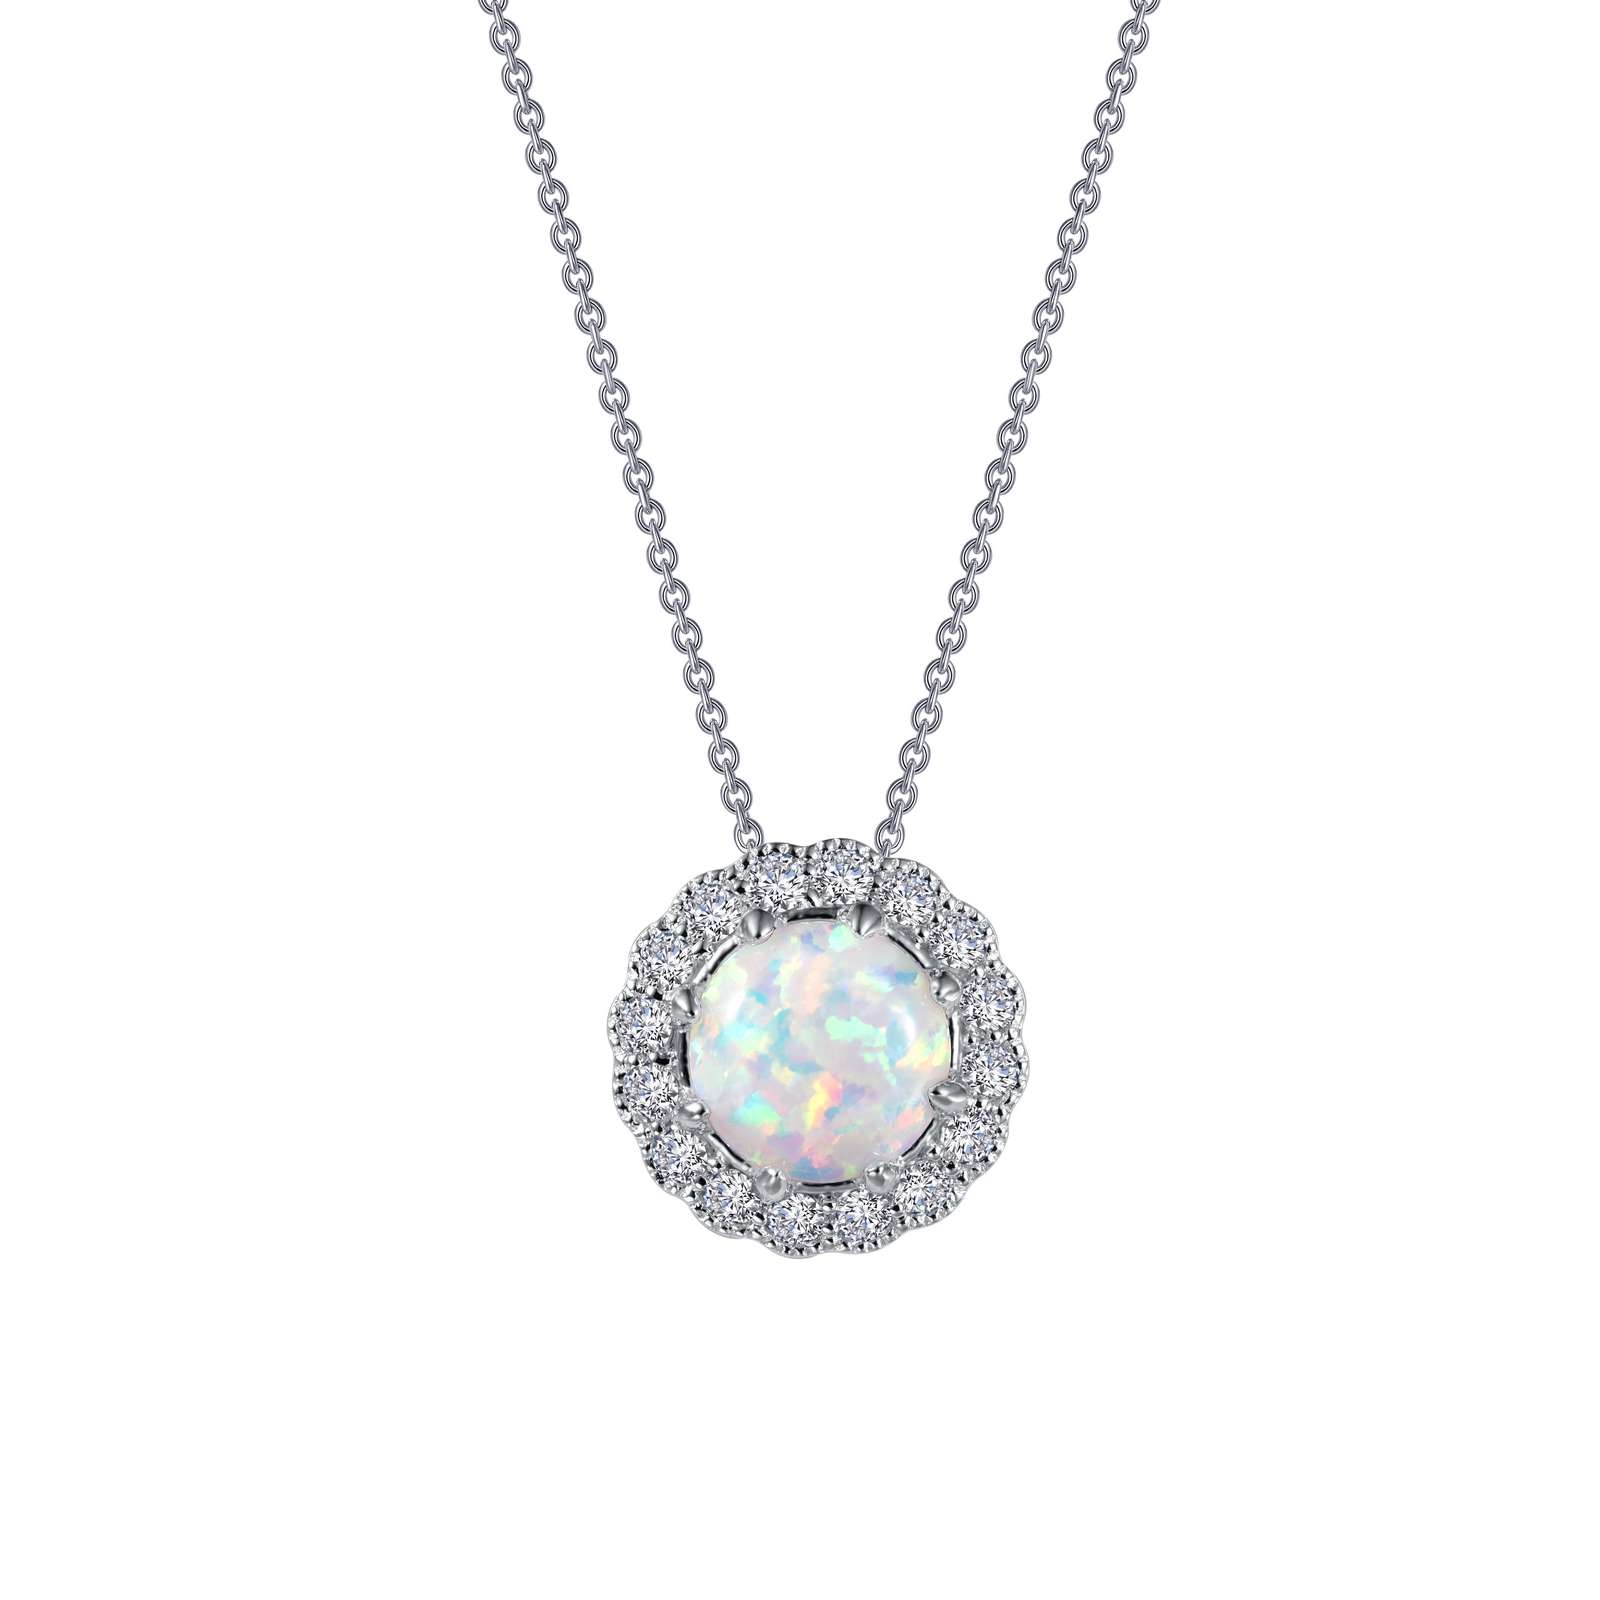 "Simple yet elegant. This halo pendant features a simulated opal center stone, surrounded by Lafonn's signature Lassaire simulated diamonds, in sterling silver bonded with platinum. The pendant comes on an adjustable 18"" chain."